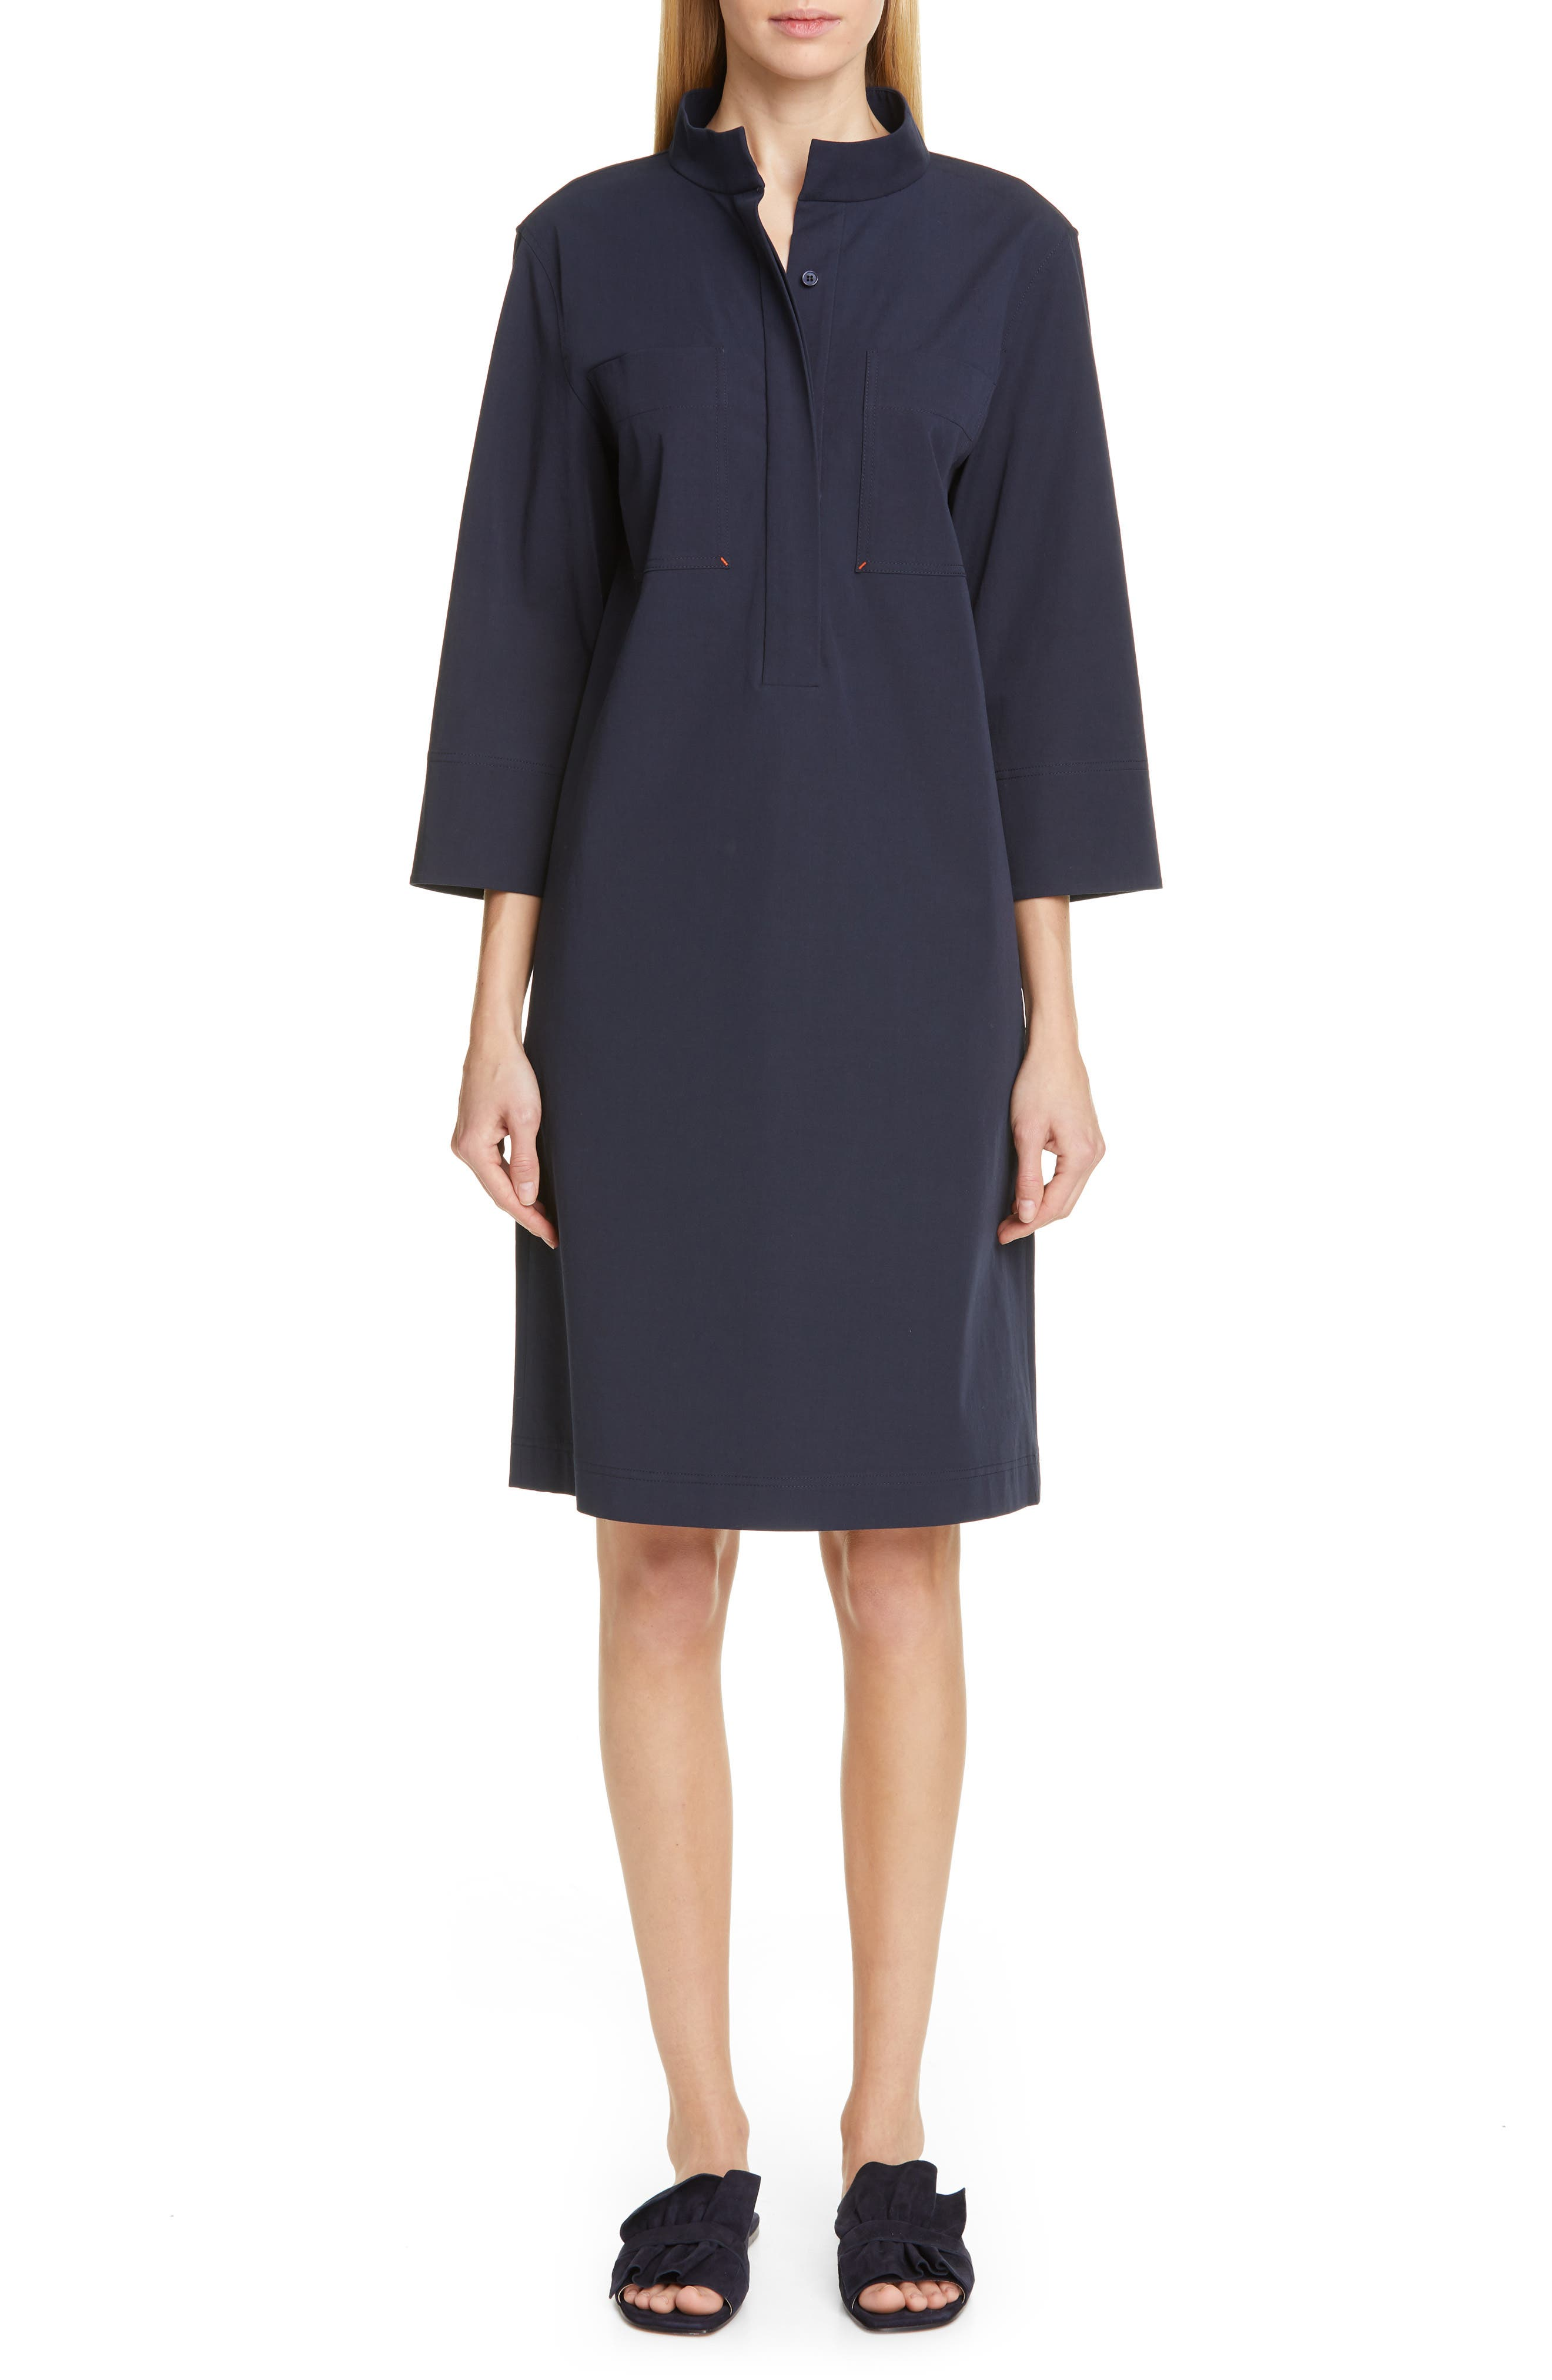 LAFAYETTE 148 NEW YORK Mitchell Shift Dress, Main, color, INK